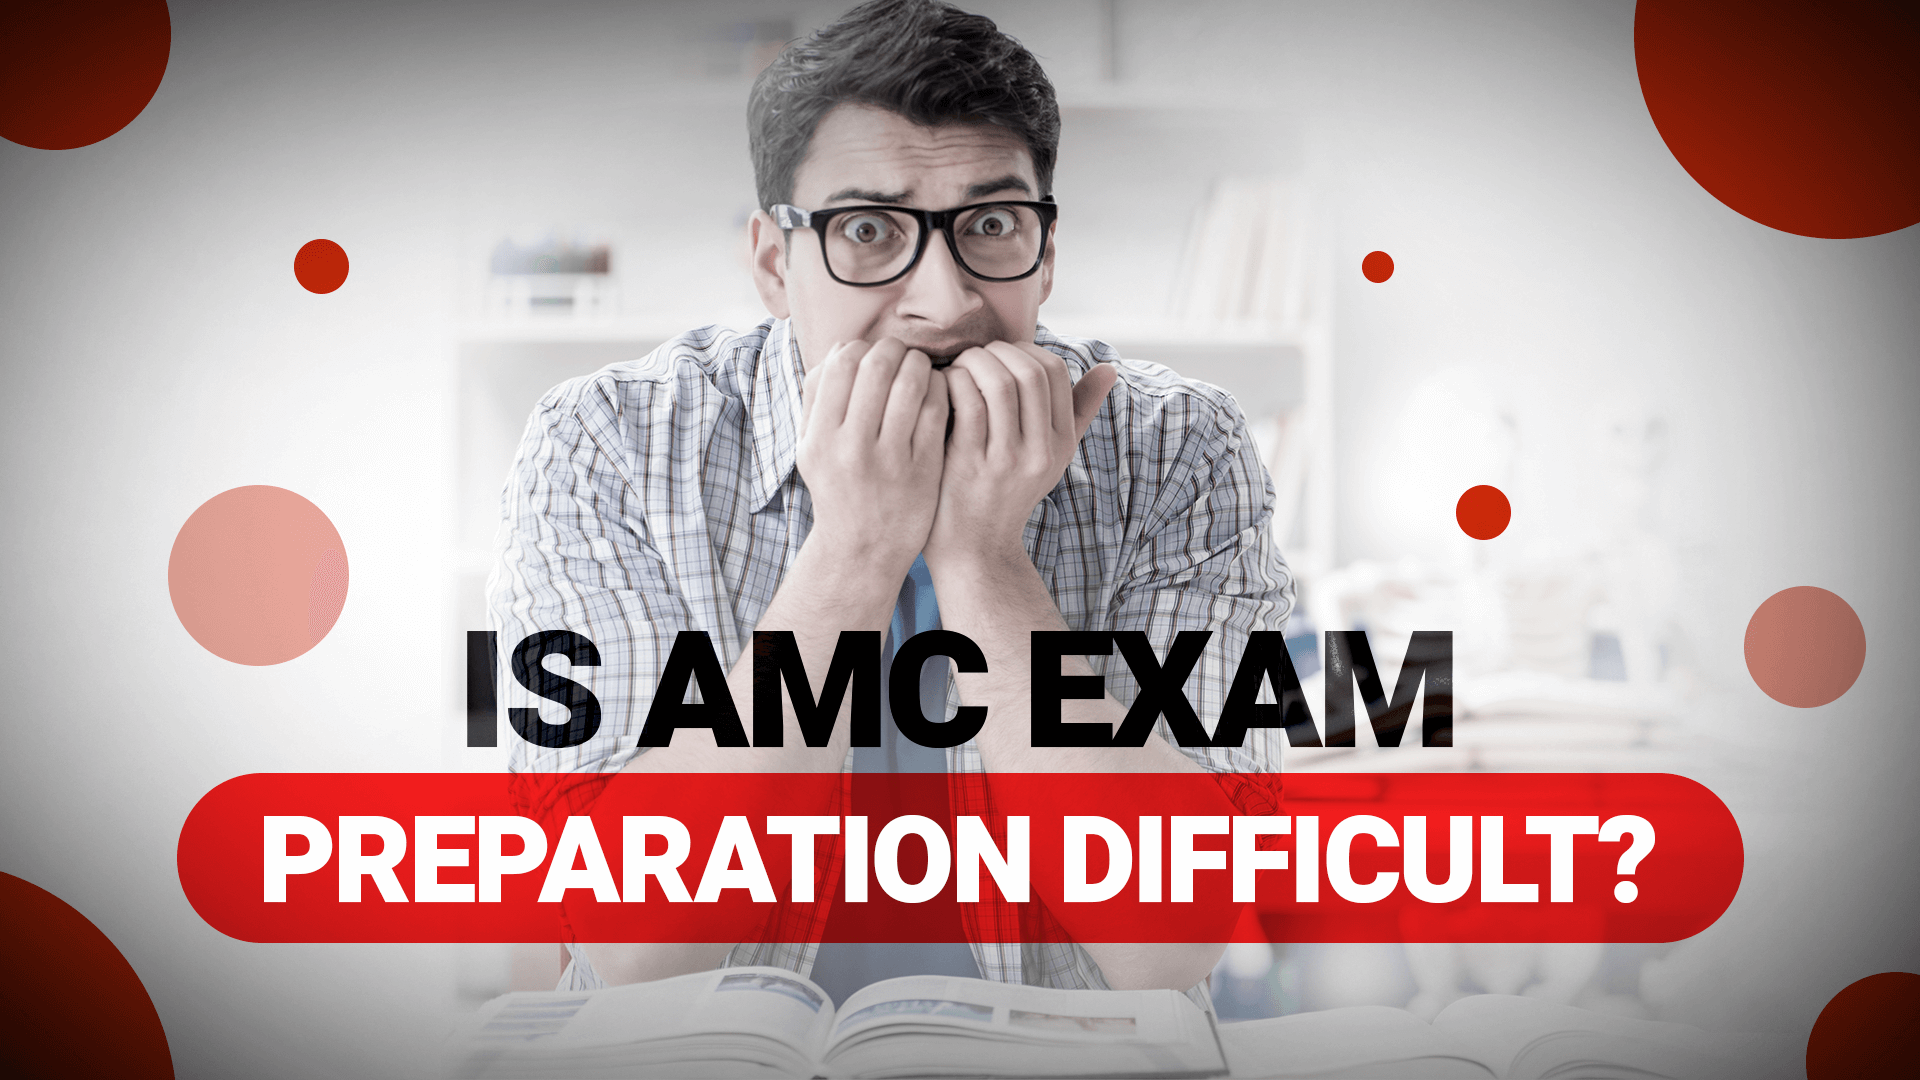 Is AMC Exam Preparation Difficult?